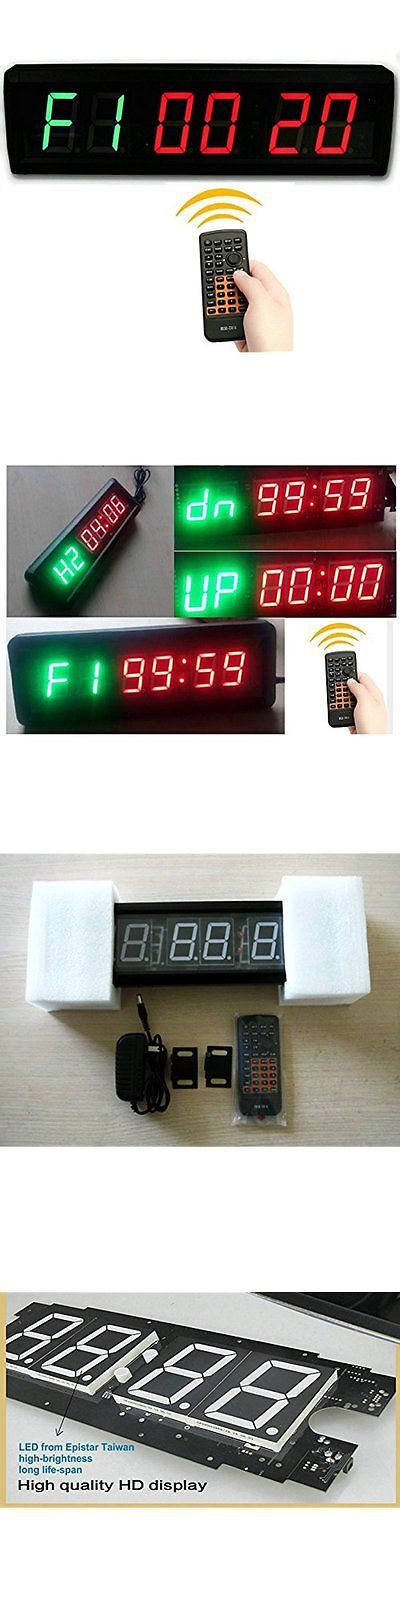 Stopwatches 166149: Time Clock 1.5 In. High 6 Digits Led Countdown Gym Boxing 12 24-Hr Real Remote -> BUY IT NOW ONLY: $98.99 on eBay!